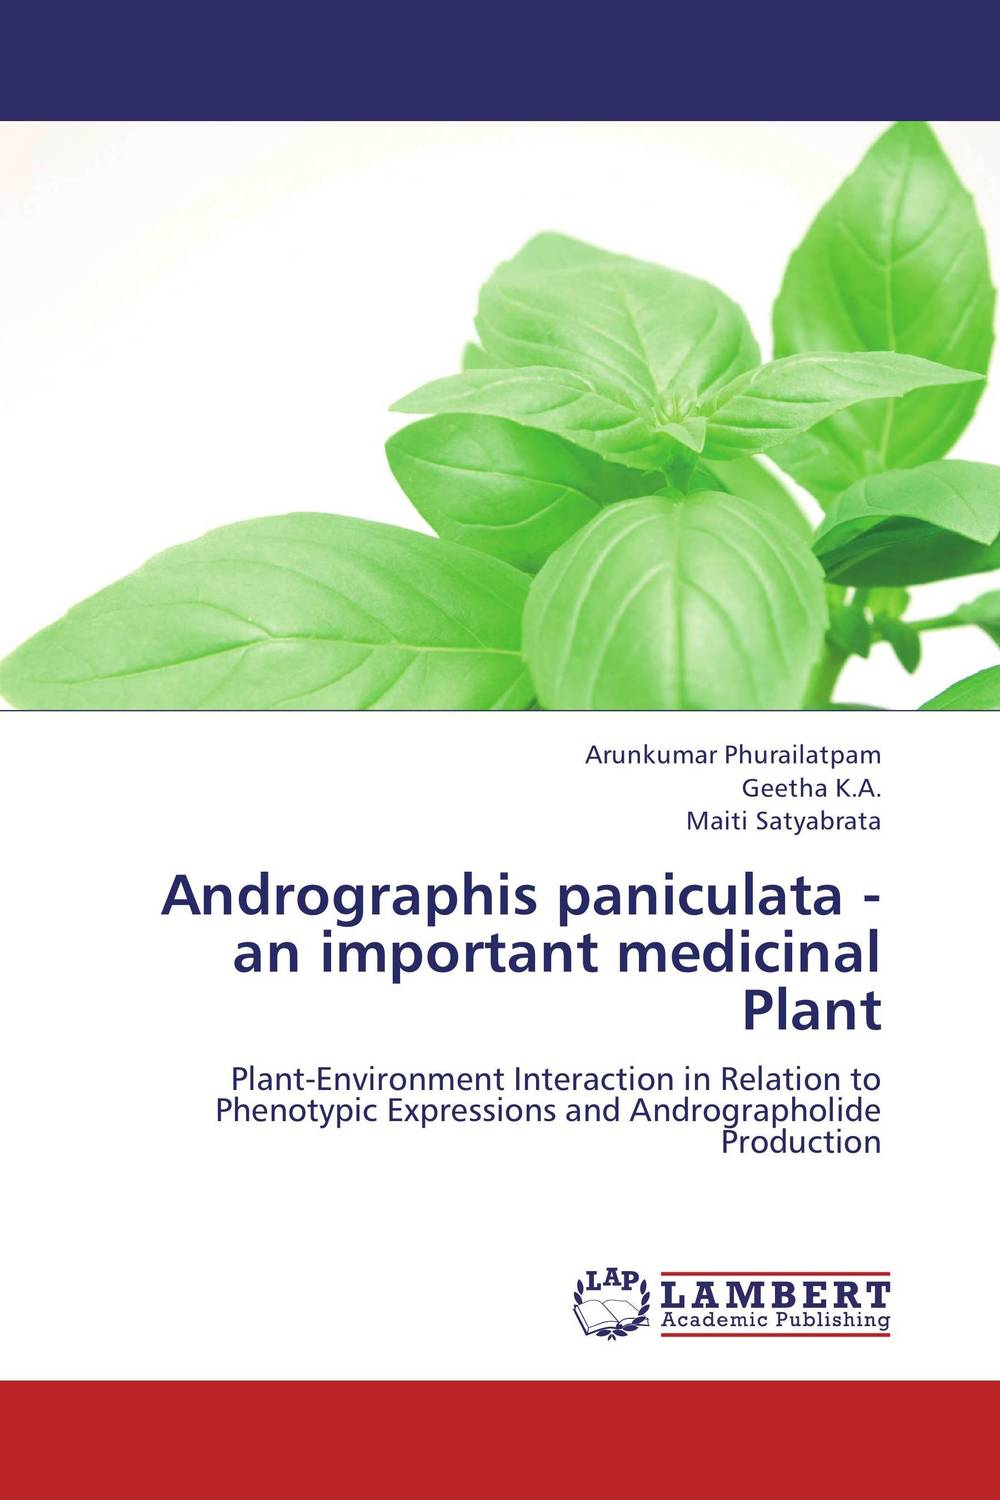 Andrographis paniculata - an important medicinal Plant 2016 bigbang world our made final in seoul live